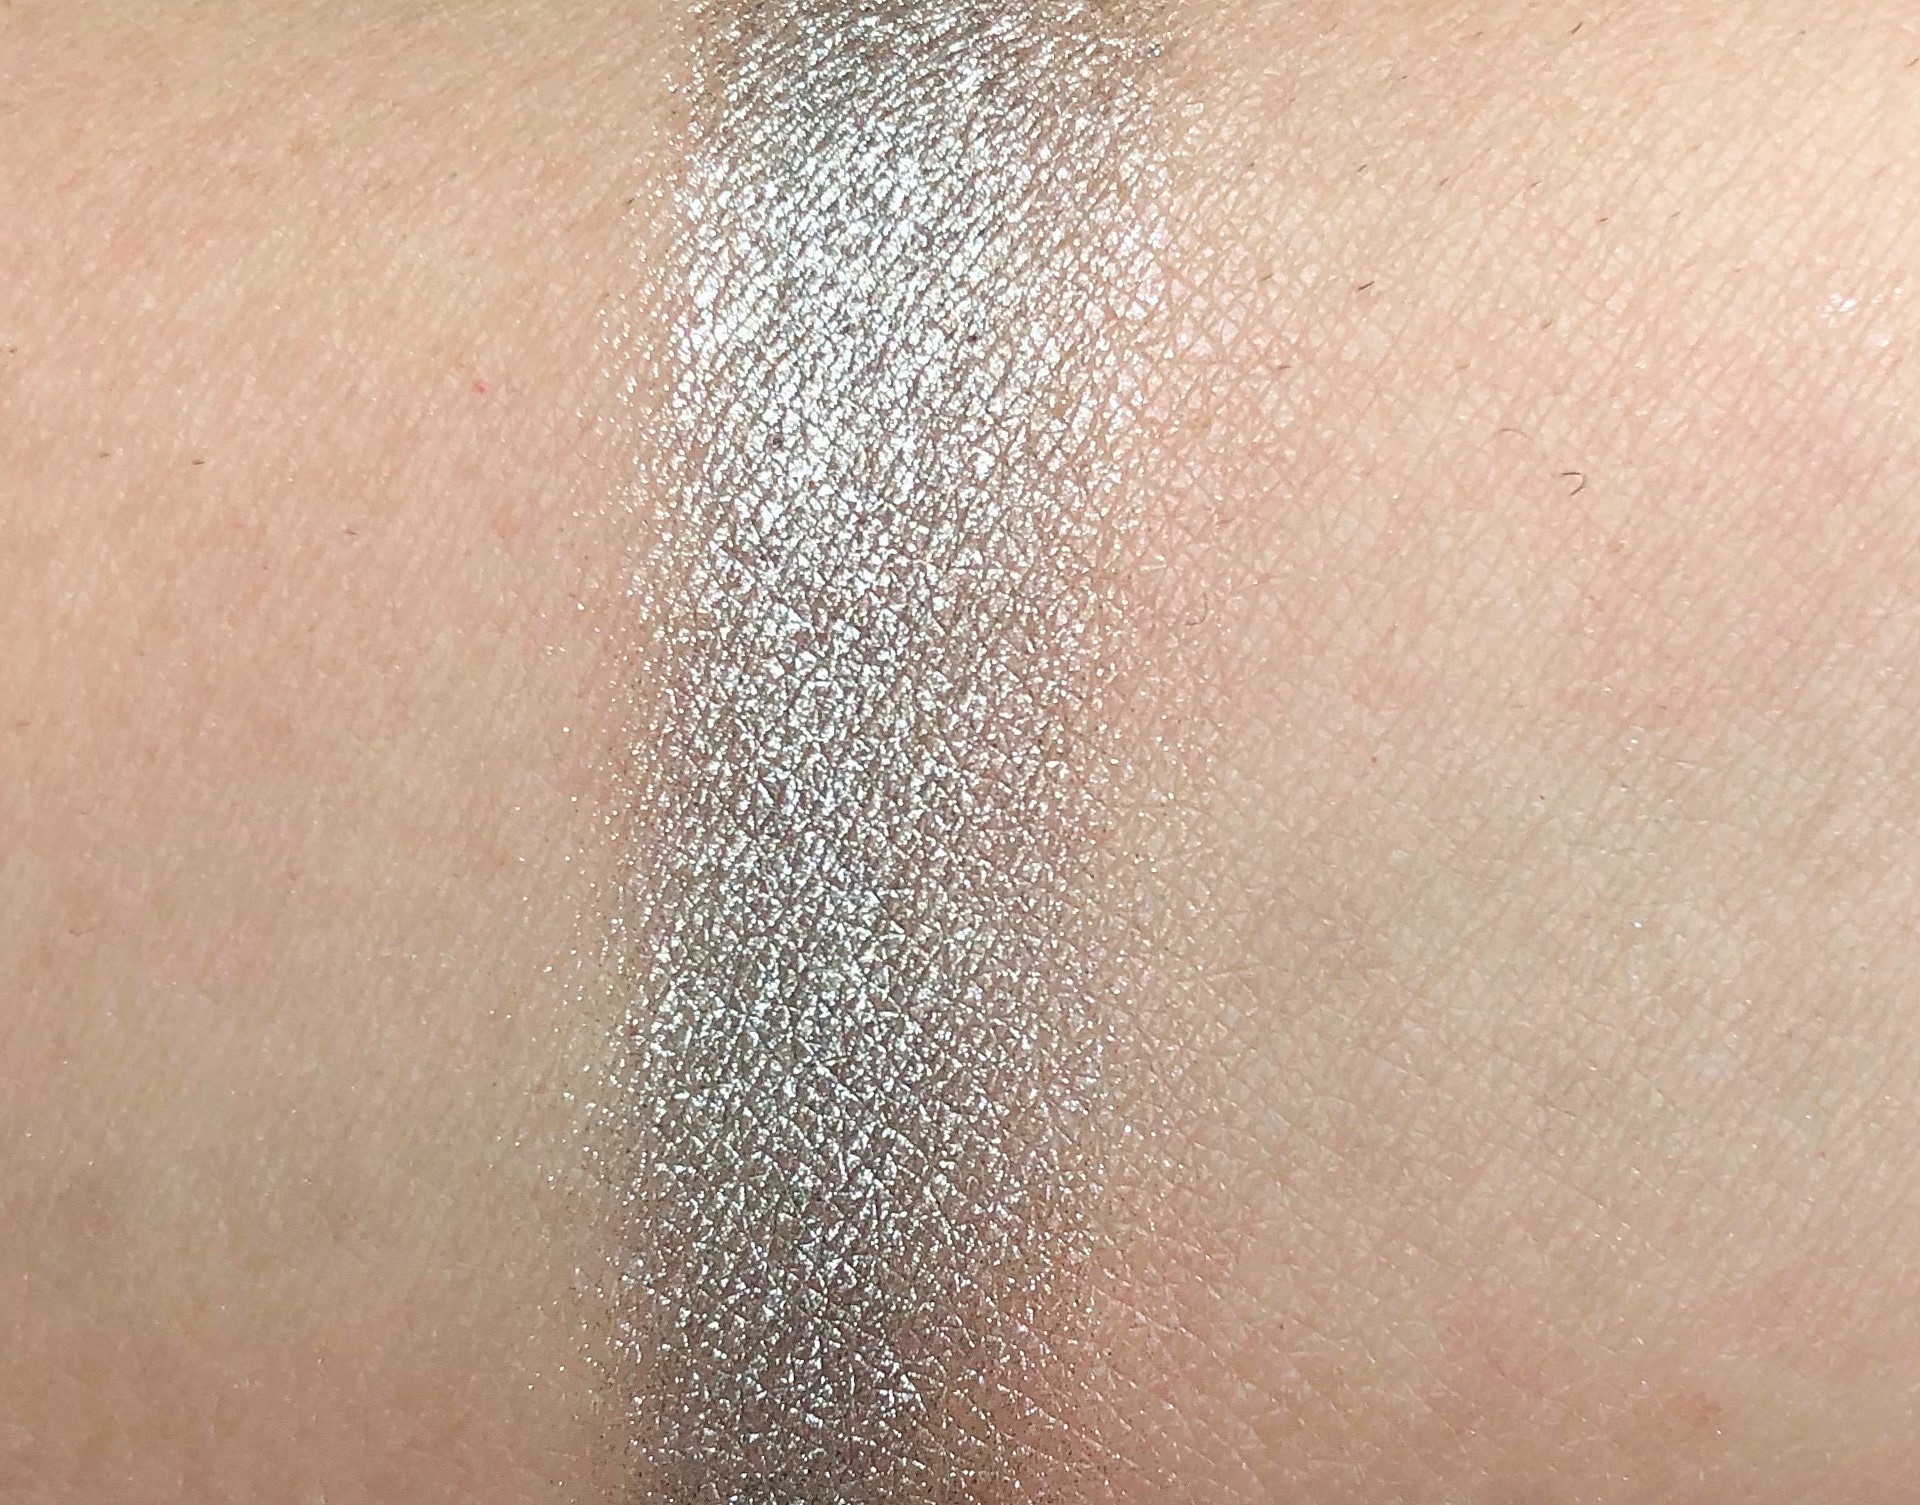 Recensione Essence Lead Me Melted Chrome Eyeshadow (5)